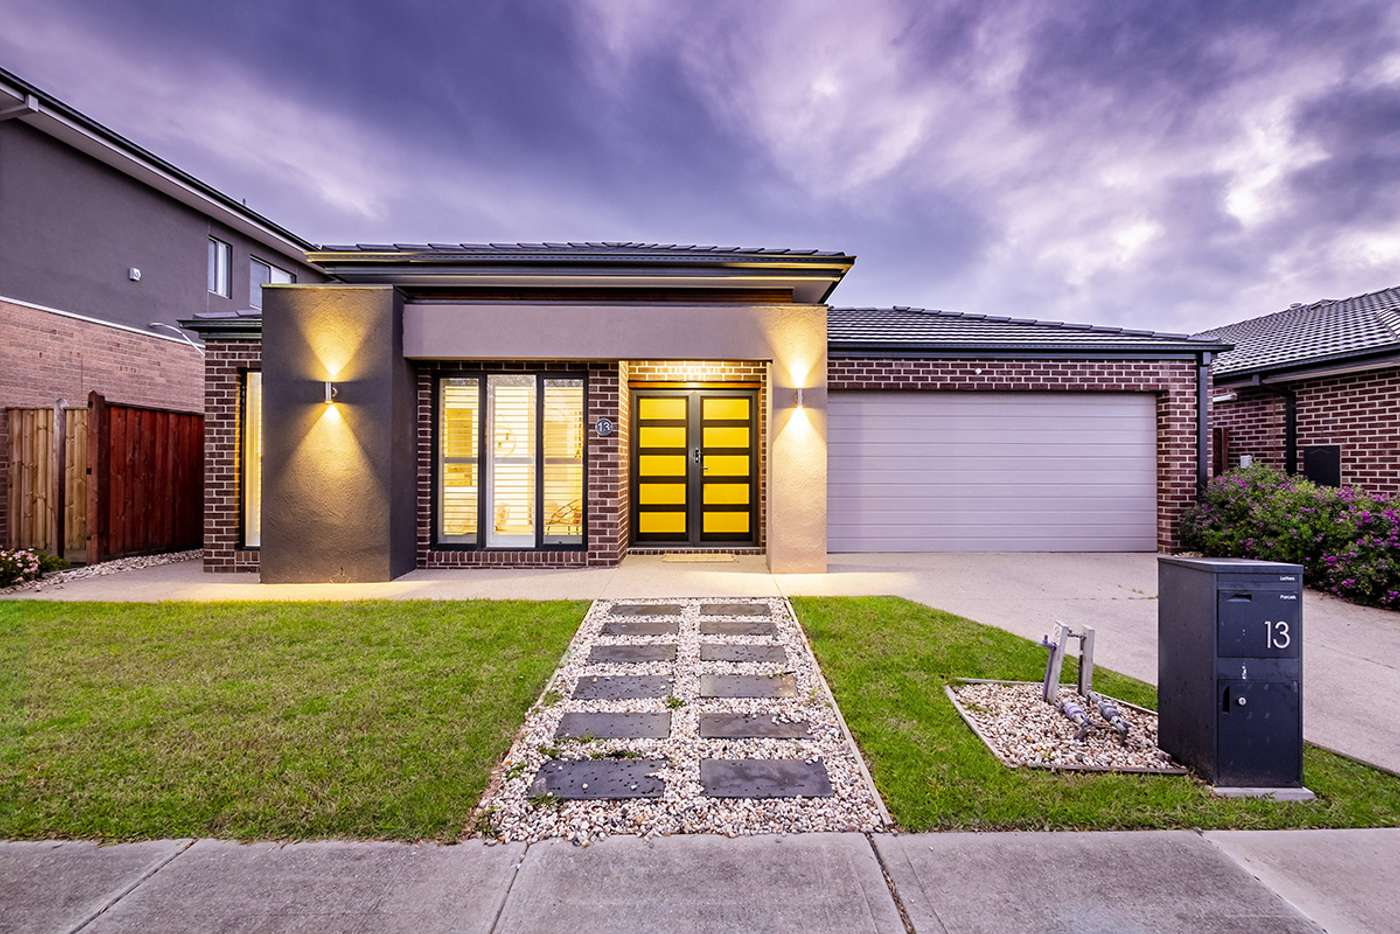 Main view of Homely house listing, 13 Gumview Road, Lyndhurst VIC 3975